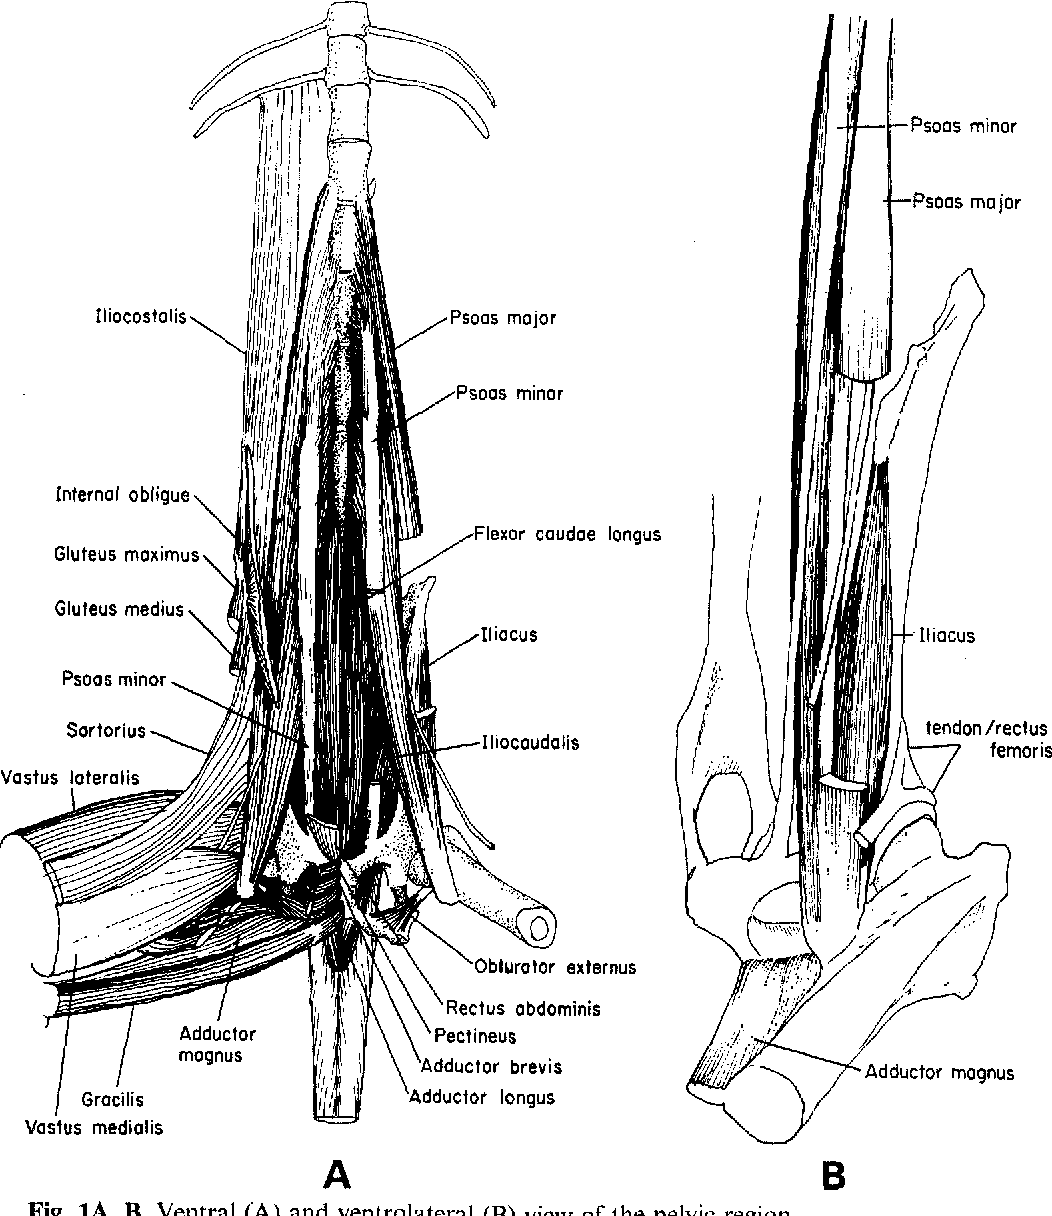 Gross anatomy of hindlimb skeletal muscles of theGalago senegalensis ...